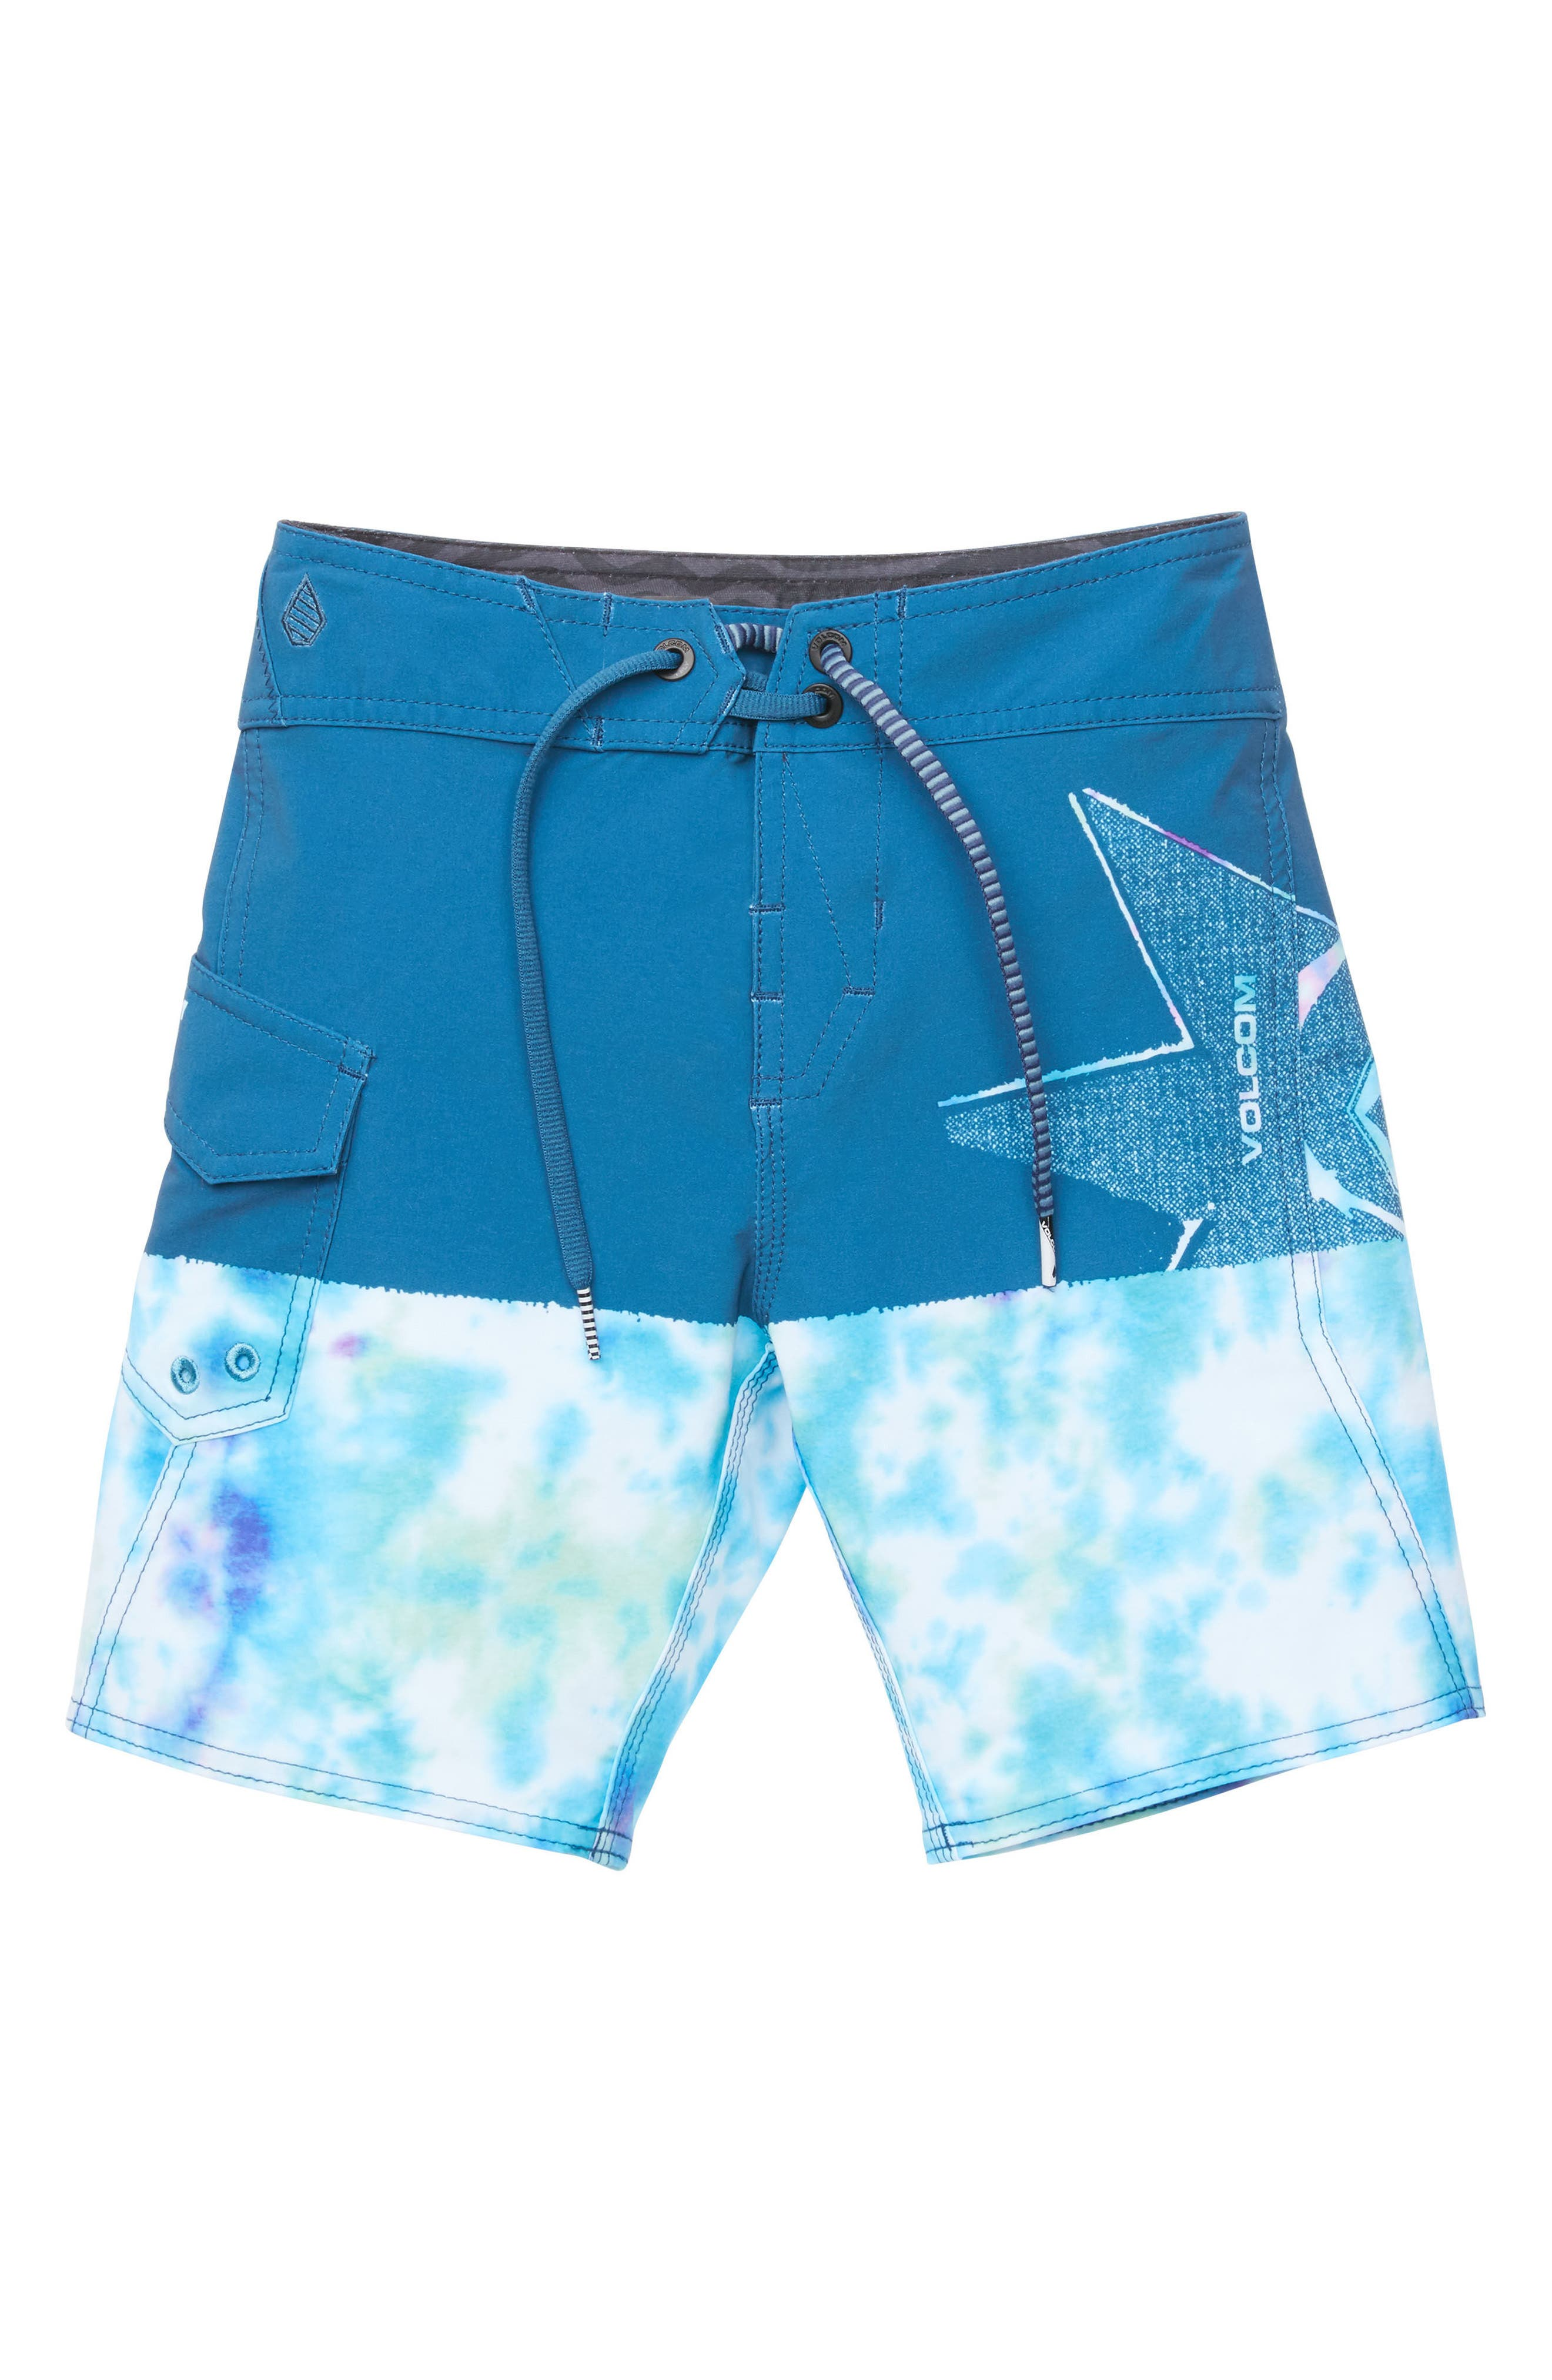 Lido Block Mod Board Shorts,                         Main,                         color, 440